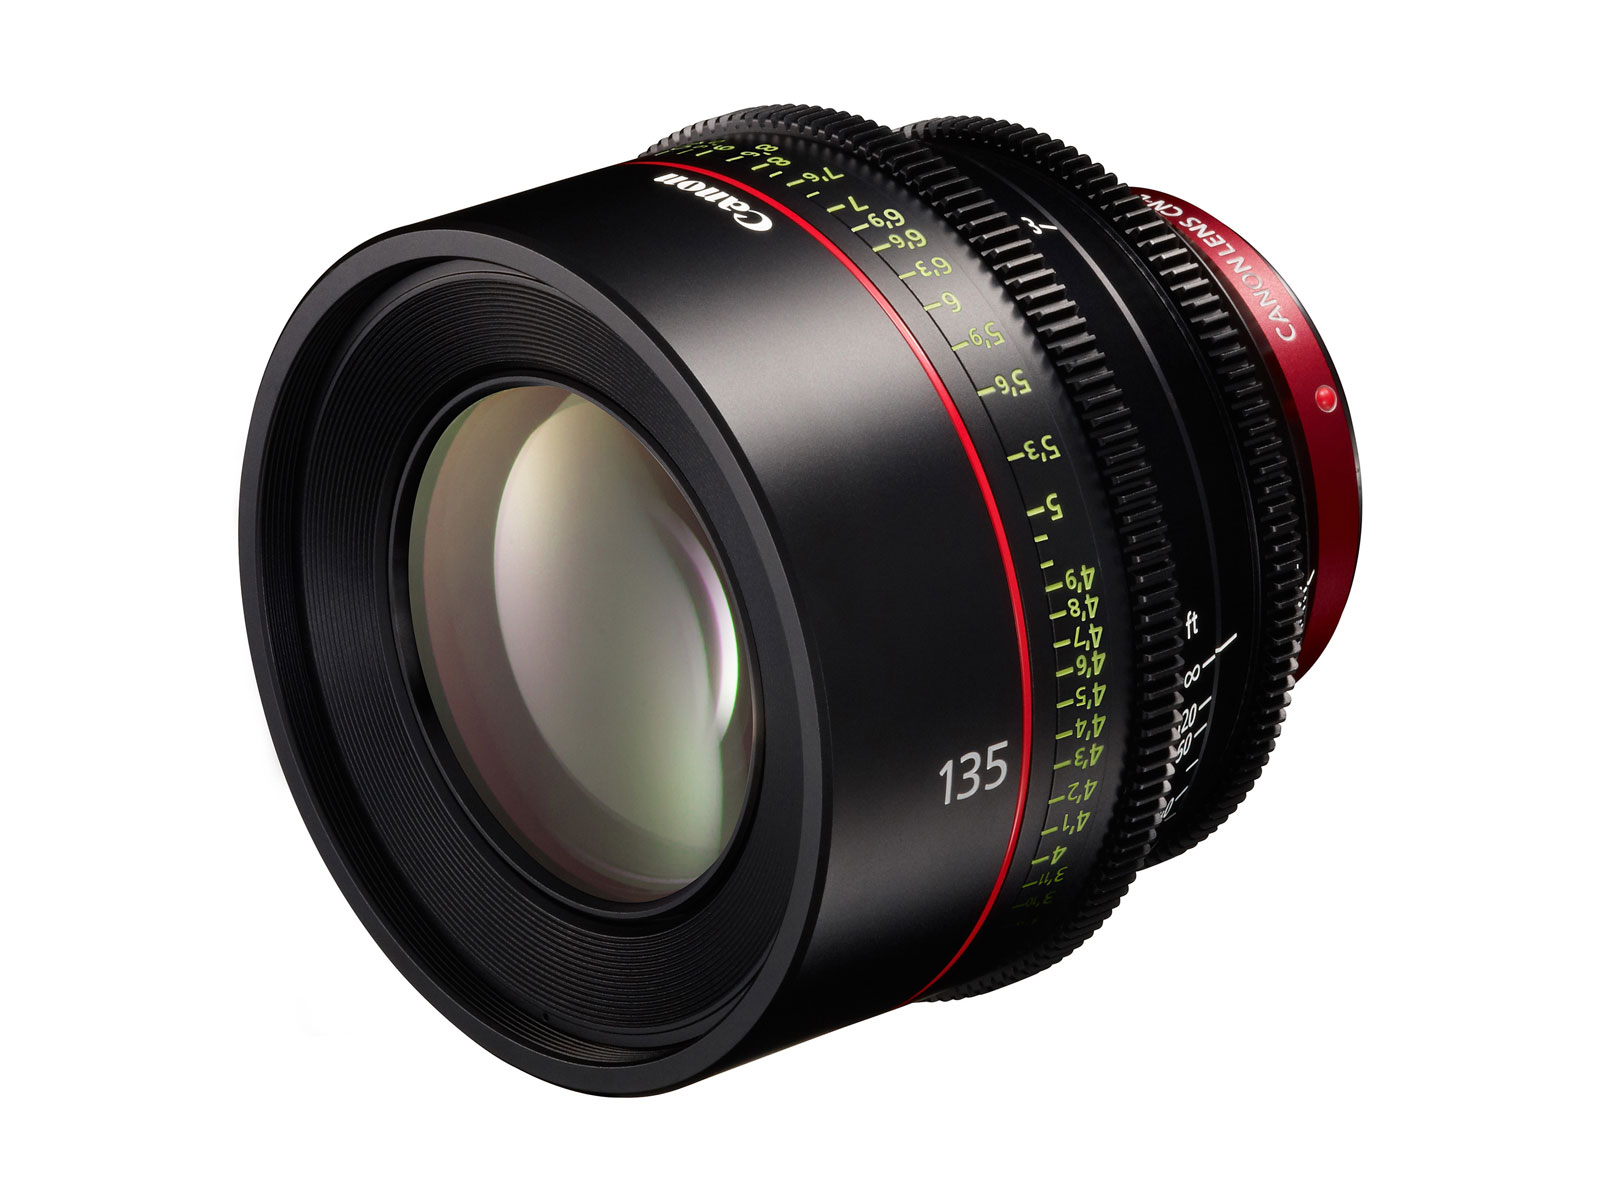 How to use Canon EF lenses on the Panasonic GH4